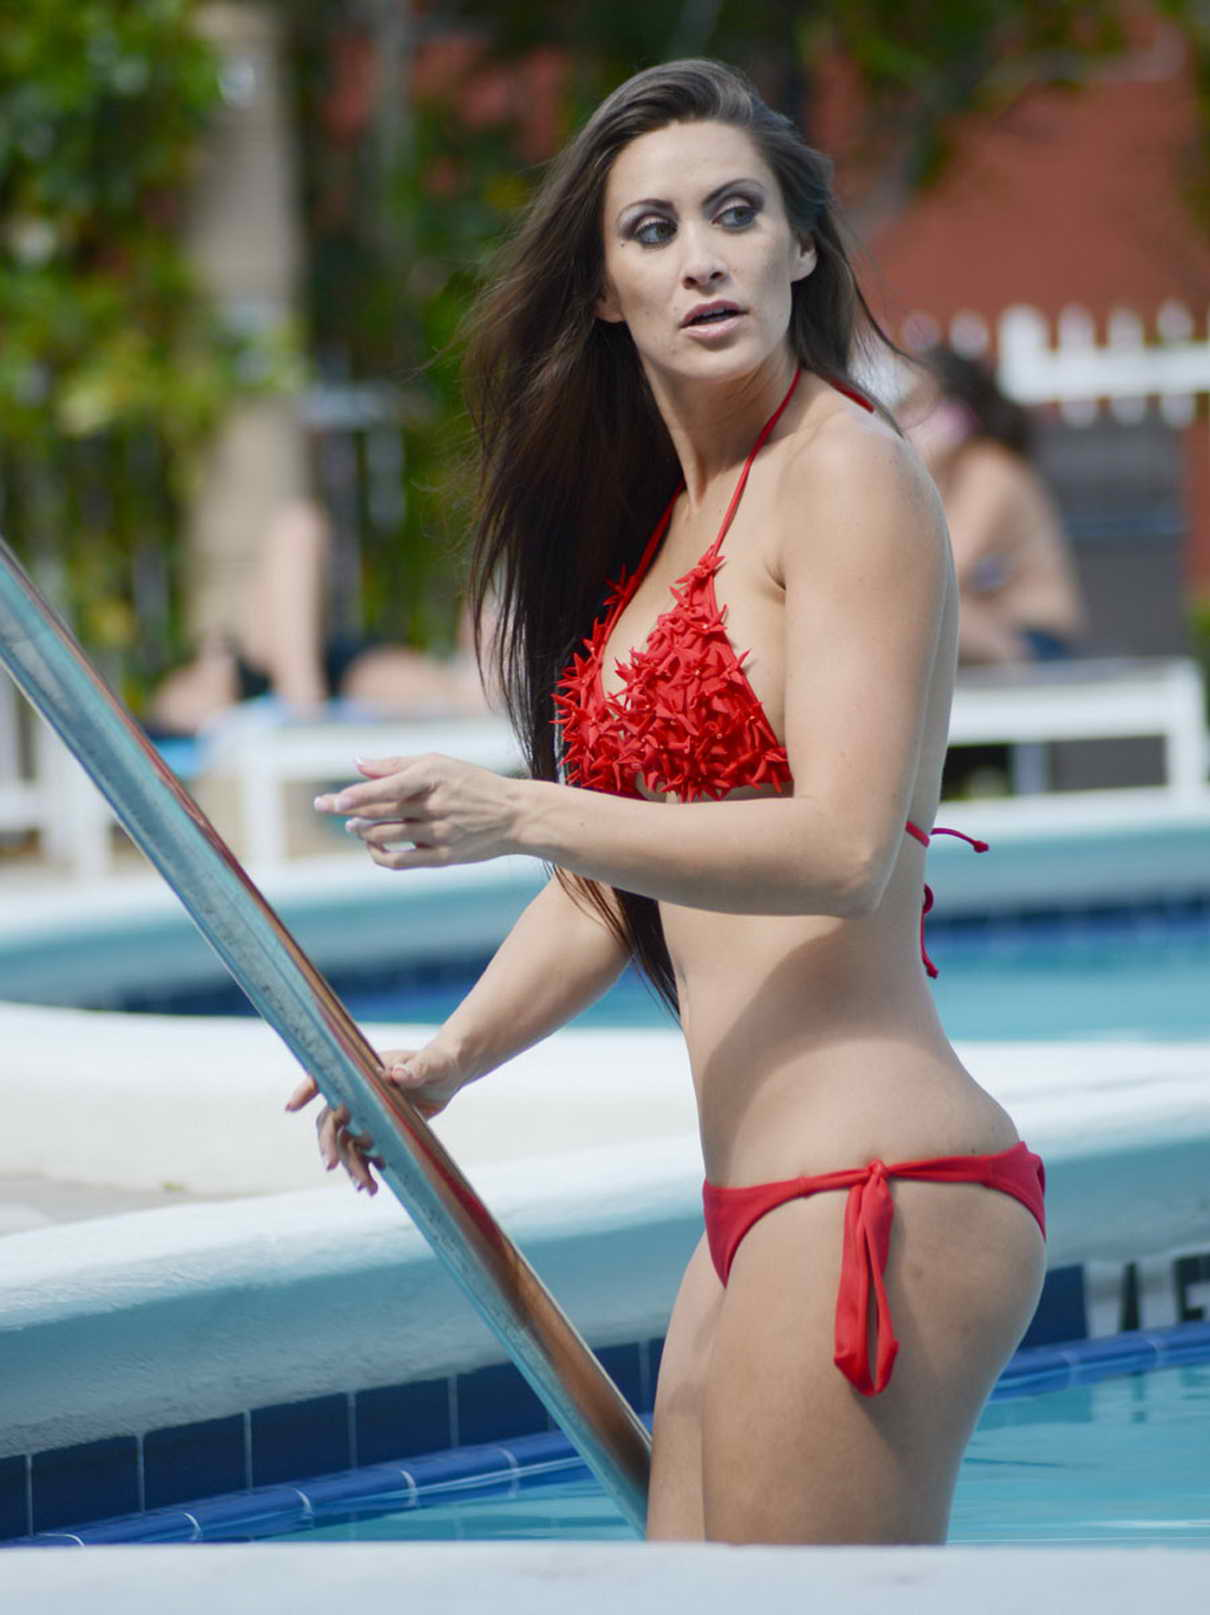 Anais Zanotti anais zanotti in red bikini in miami-7 – lacelebs.co